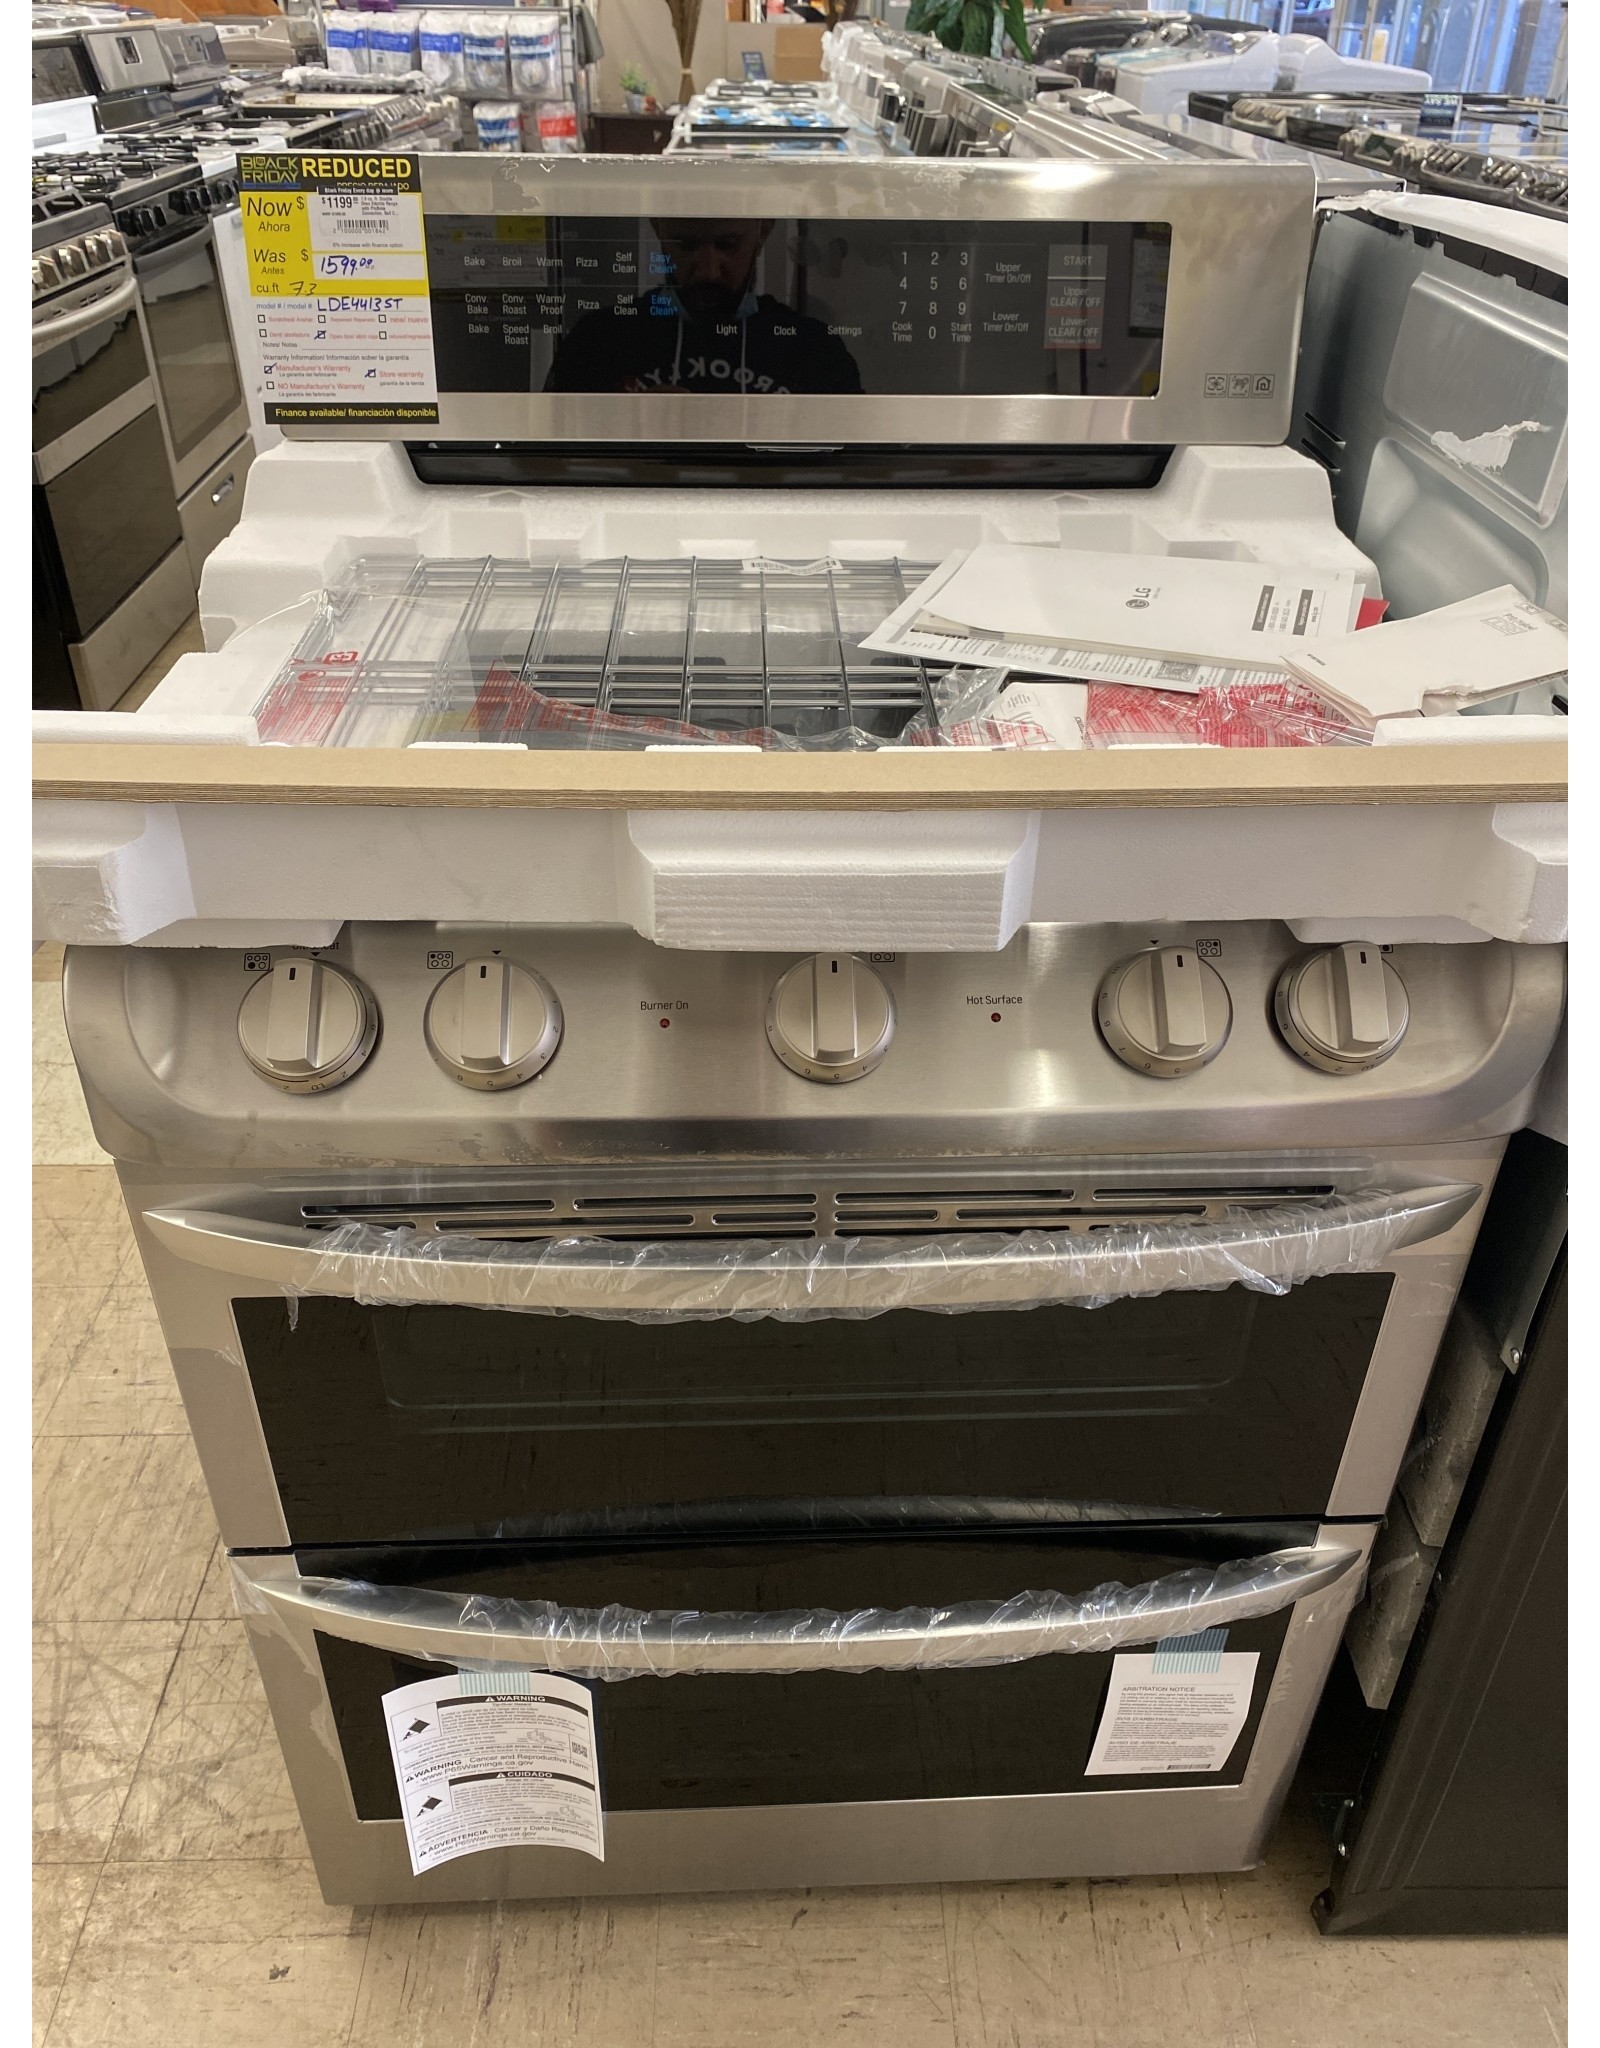 LG Electronics 7.3 cu. ft. Double Oven Electric Range with ProBake Convection, Self Clean and EasyClean in Stainless Steel